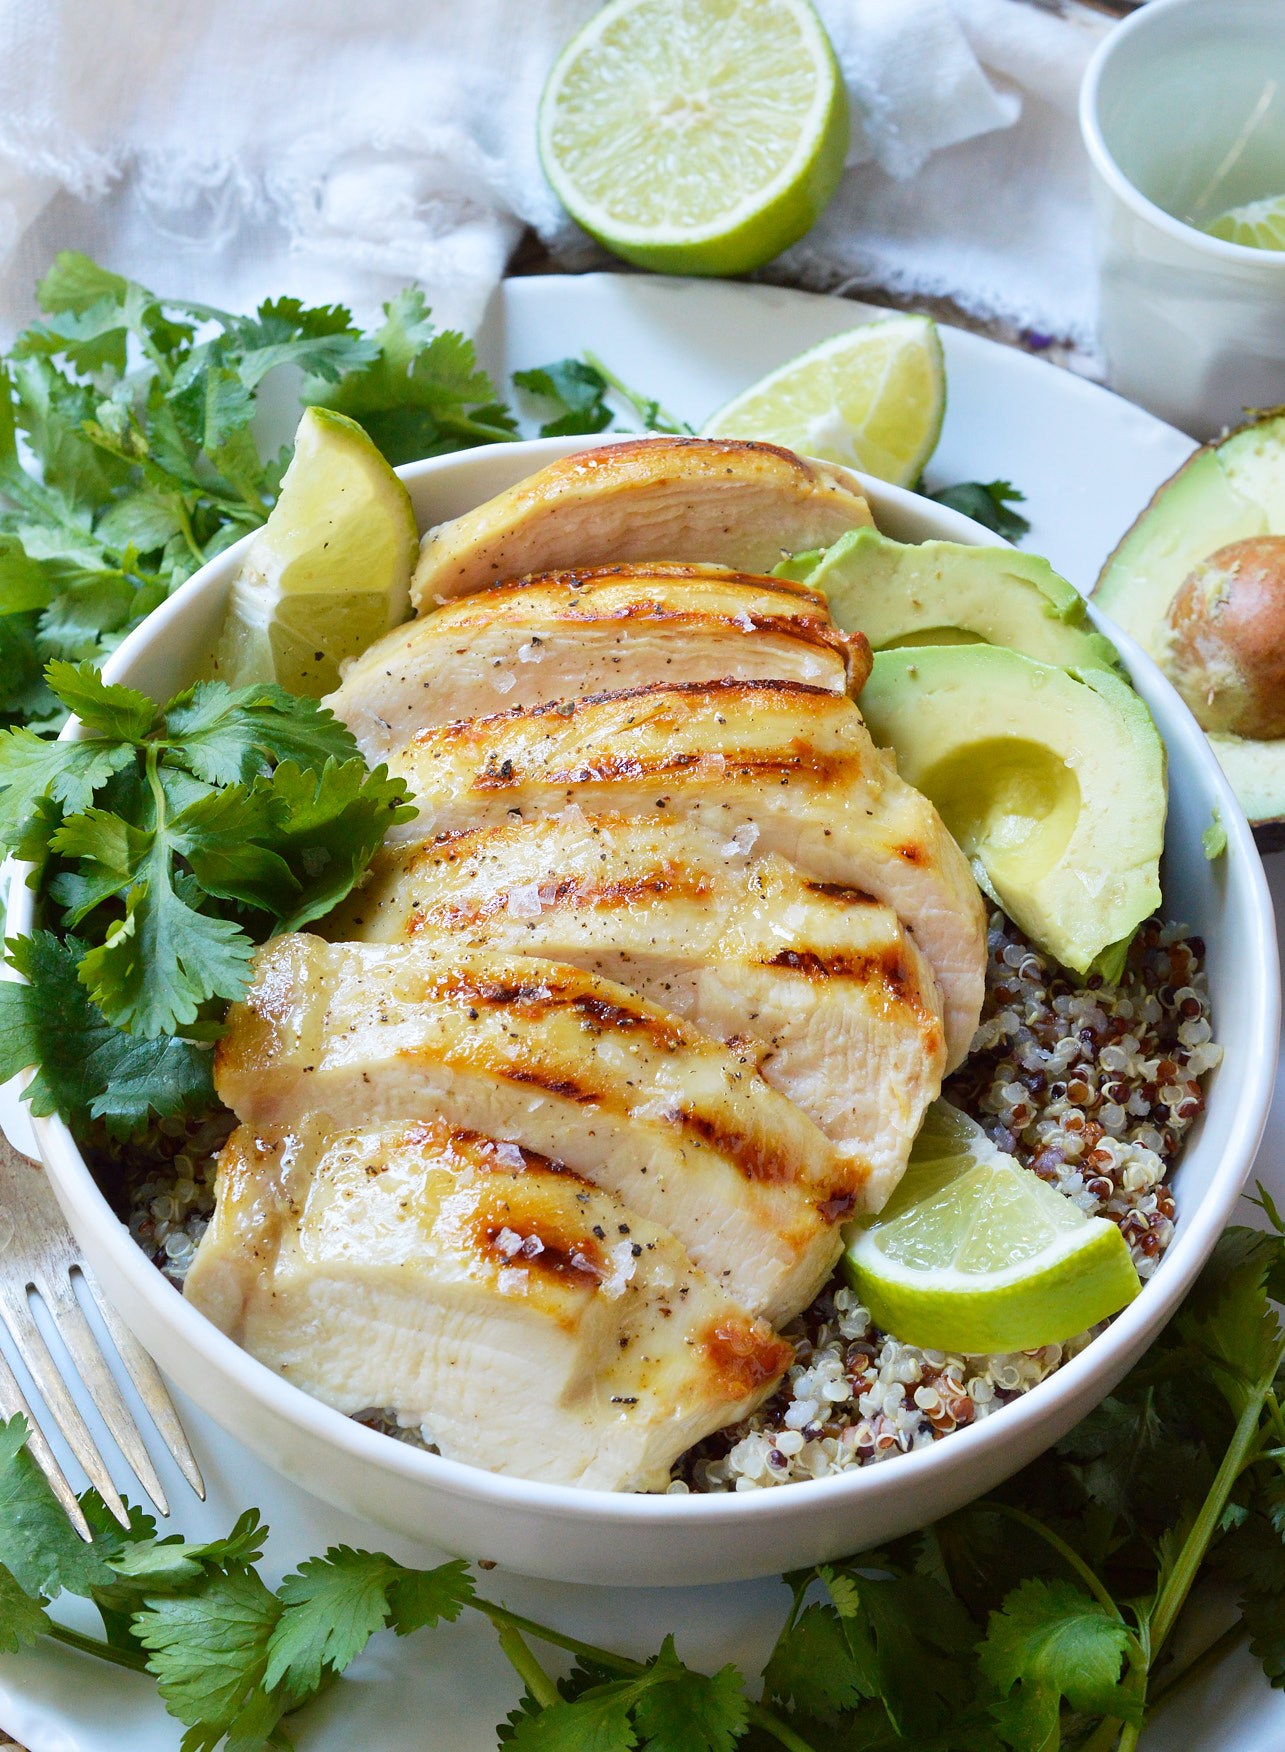 Perfect for those New Year's resolutions, this Tequila Lime Chicken Quinoa Bowl is healthy, nutritious, satisfying and tasty! Made with simple and natural ingredients this recipe is great for lunch or dinner.